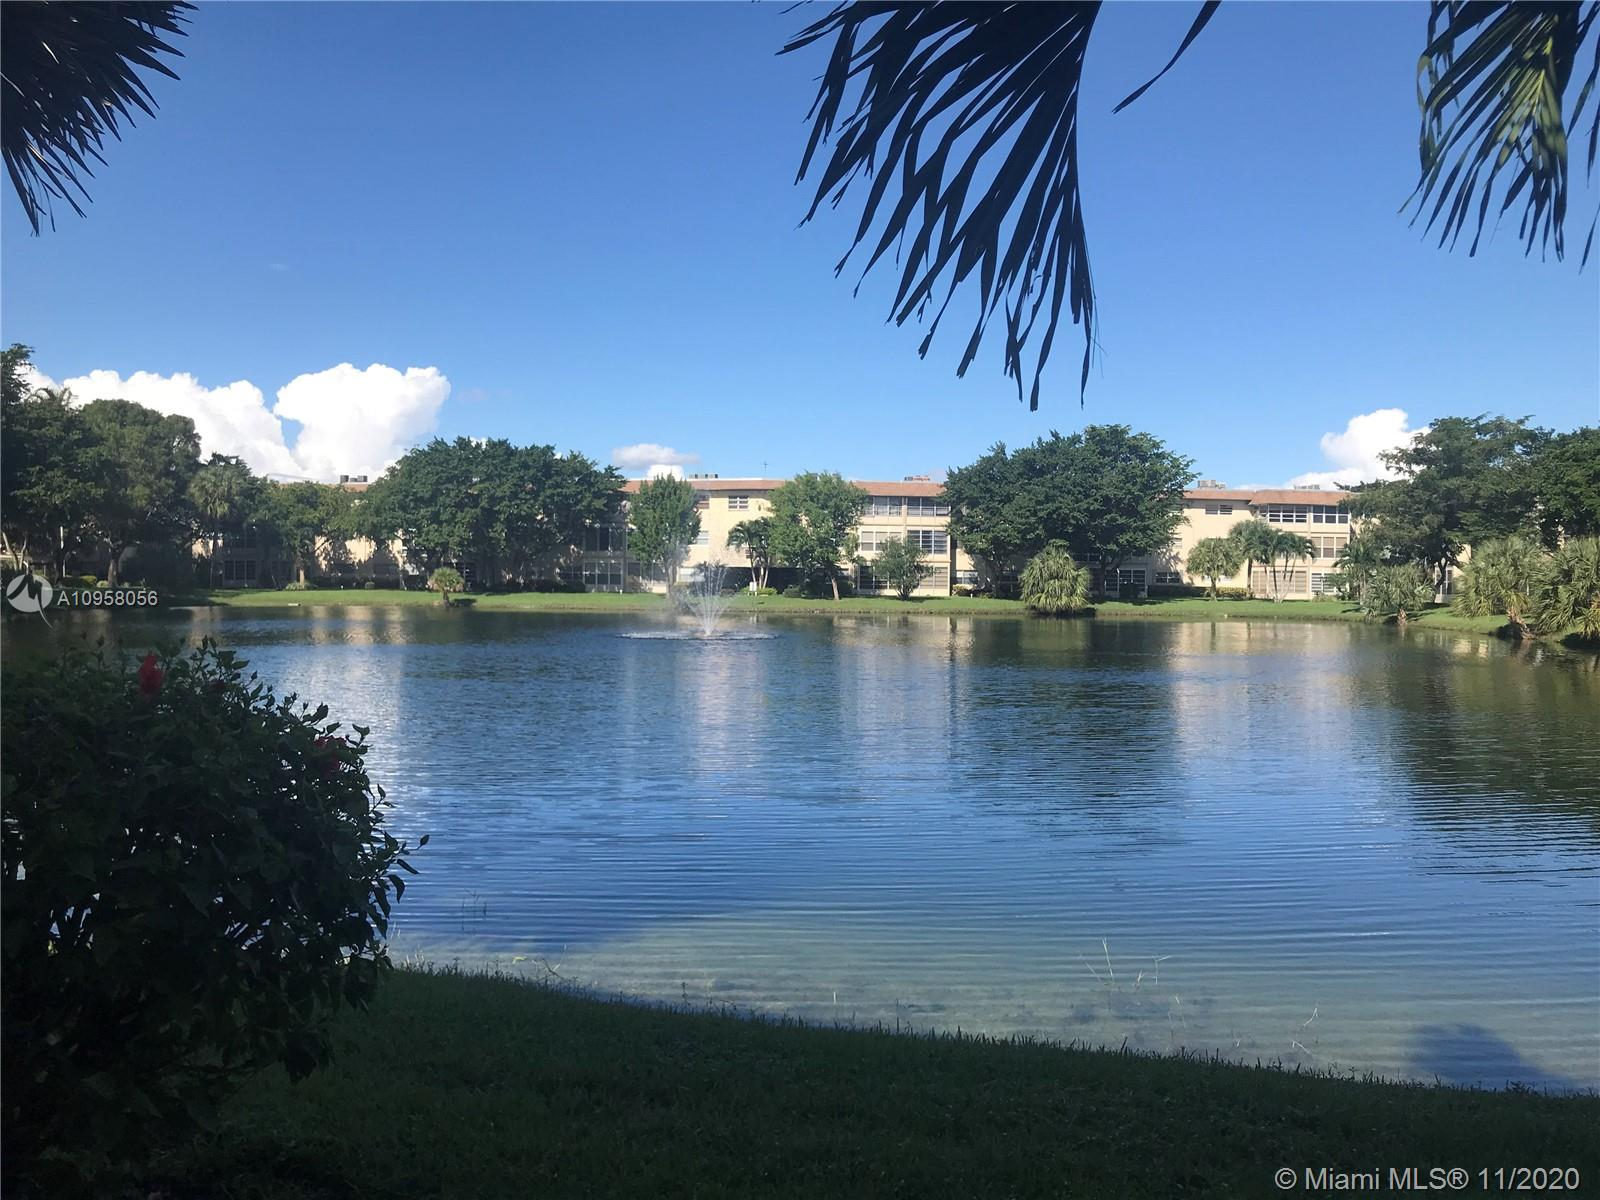 The Price is right!  Priced to sell! This 1/1 has lots of potential! The patio and living room have a great view of the lake! Give it your own touch and watch the value on this one grow! 55+ community.  Association asks for 675 credit score, 35k income, at least one owner is 55+.